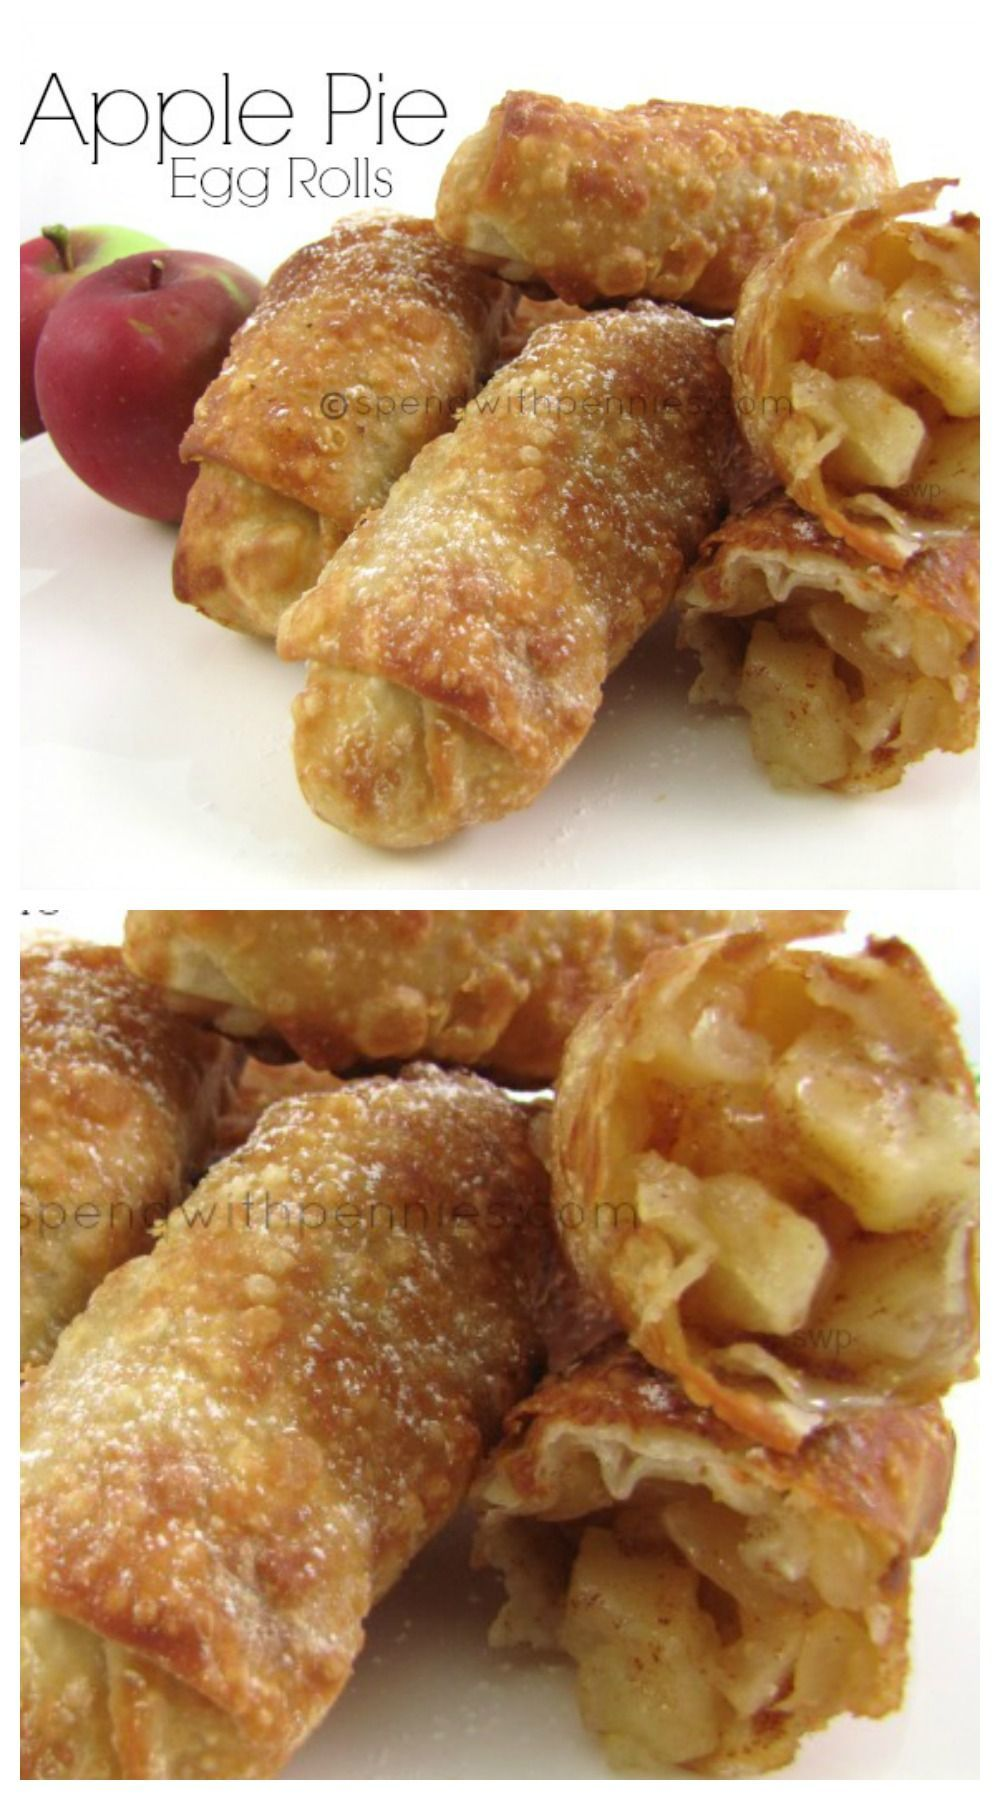 Pie Egg Rolls!  Crispy crust with a warm apple pie filling... if you liked the OLD McDonalds Apple Pies, you will LOVE these!